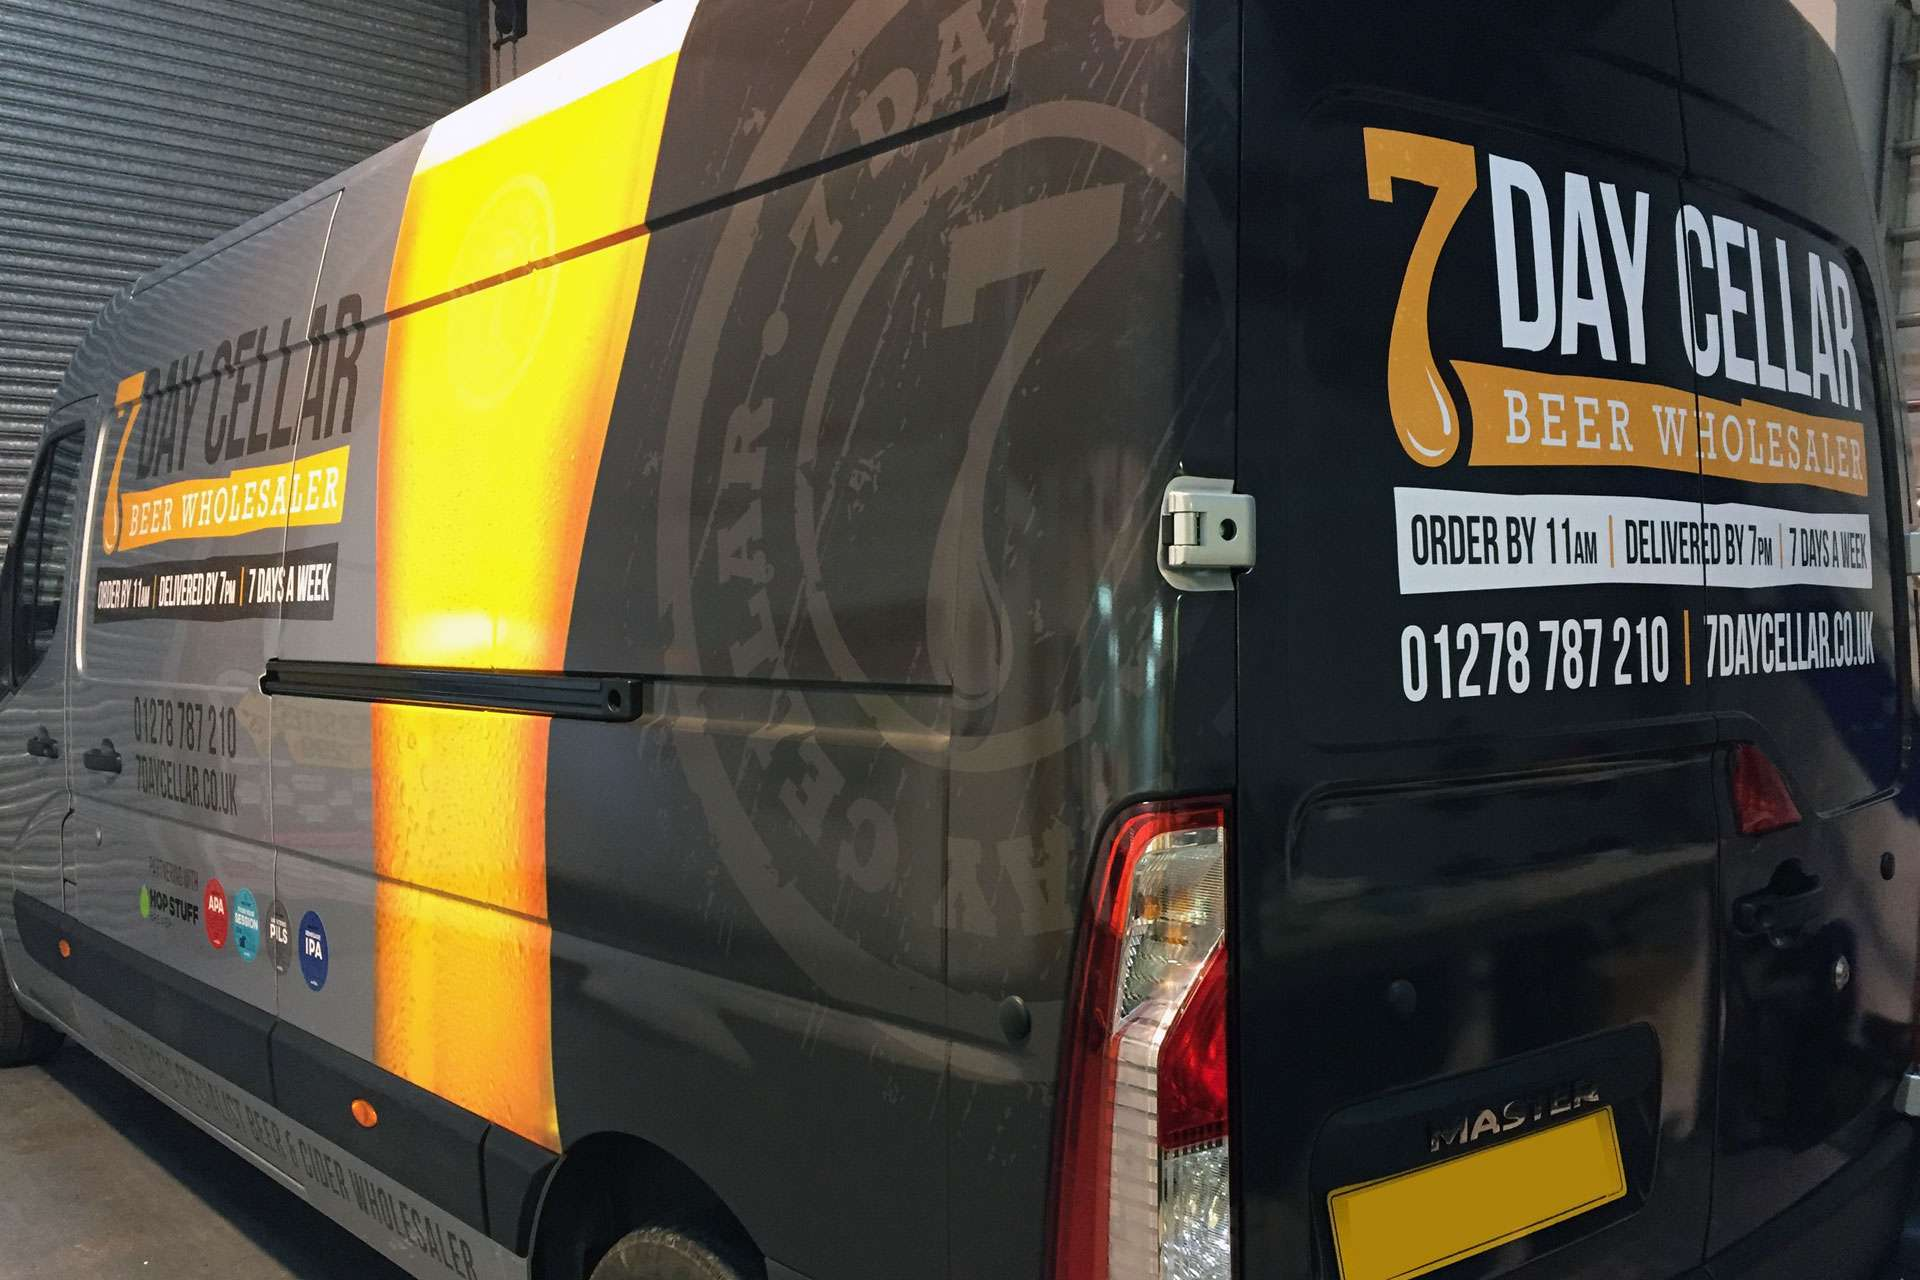 Branding 7 Day Cellar vehicle livery design, Highbridge, Somerset